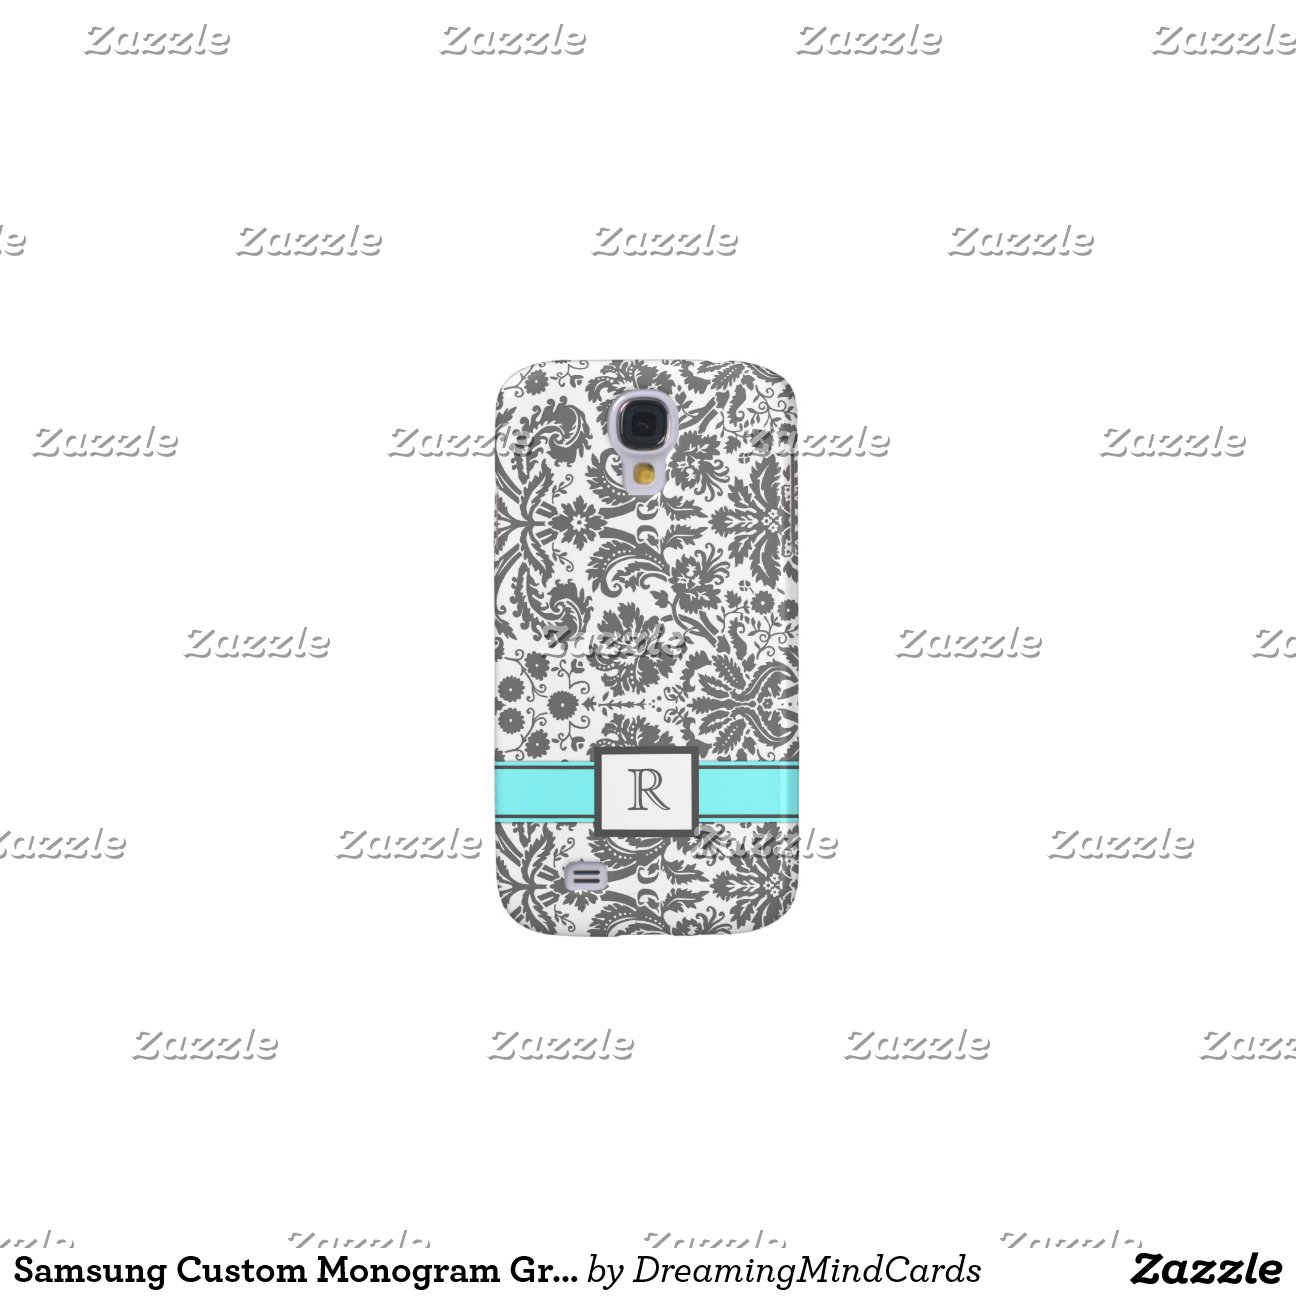 17833310 Kfbr392 Kfbr392 Kfbr392 in addition Tecumseh Engine Parts Diagram besides 2968 Wholesale Samsung Galaxy S6 G9200 Silicon Sides Hard Case Clear together with Xh2031 besides Product Eng 35876 Samsung S5 Frame Adhesive Sticker HQ Black. on samsung galaxy 5 specifications